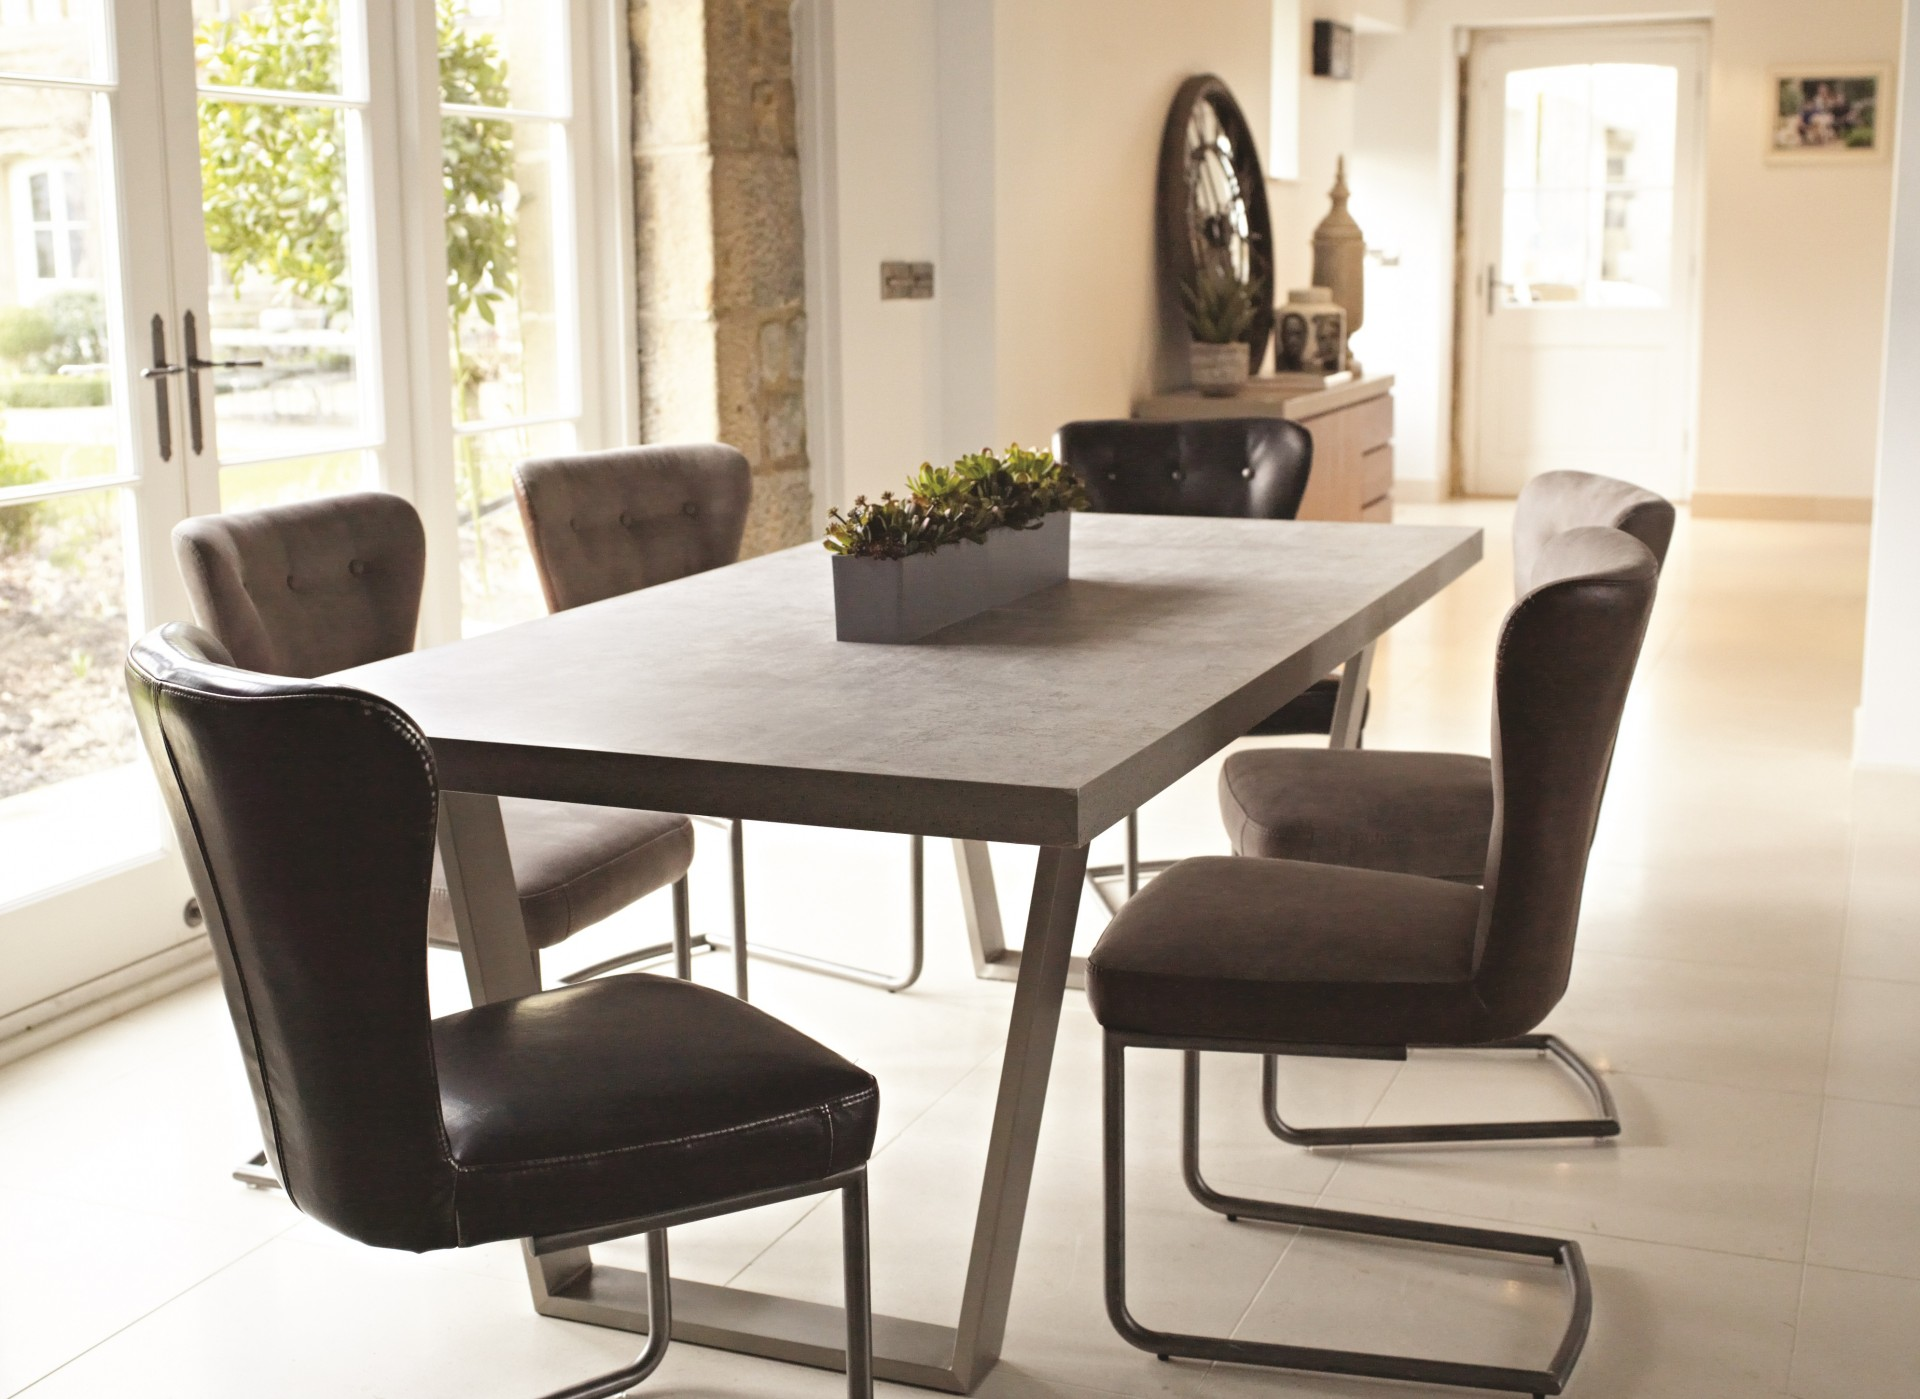 CONCRETE LOOK DINING SET